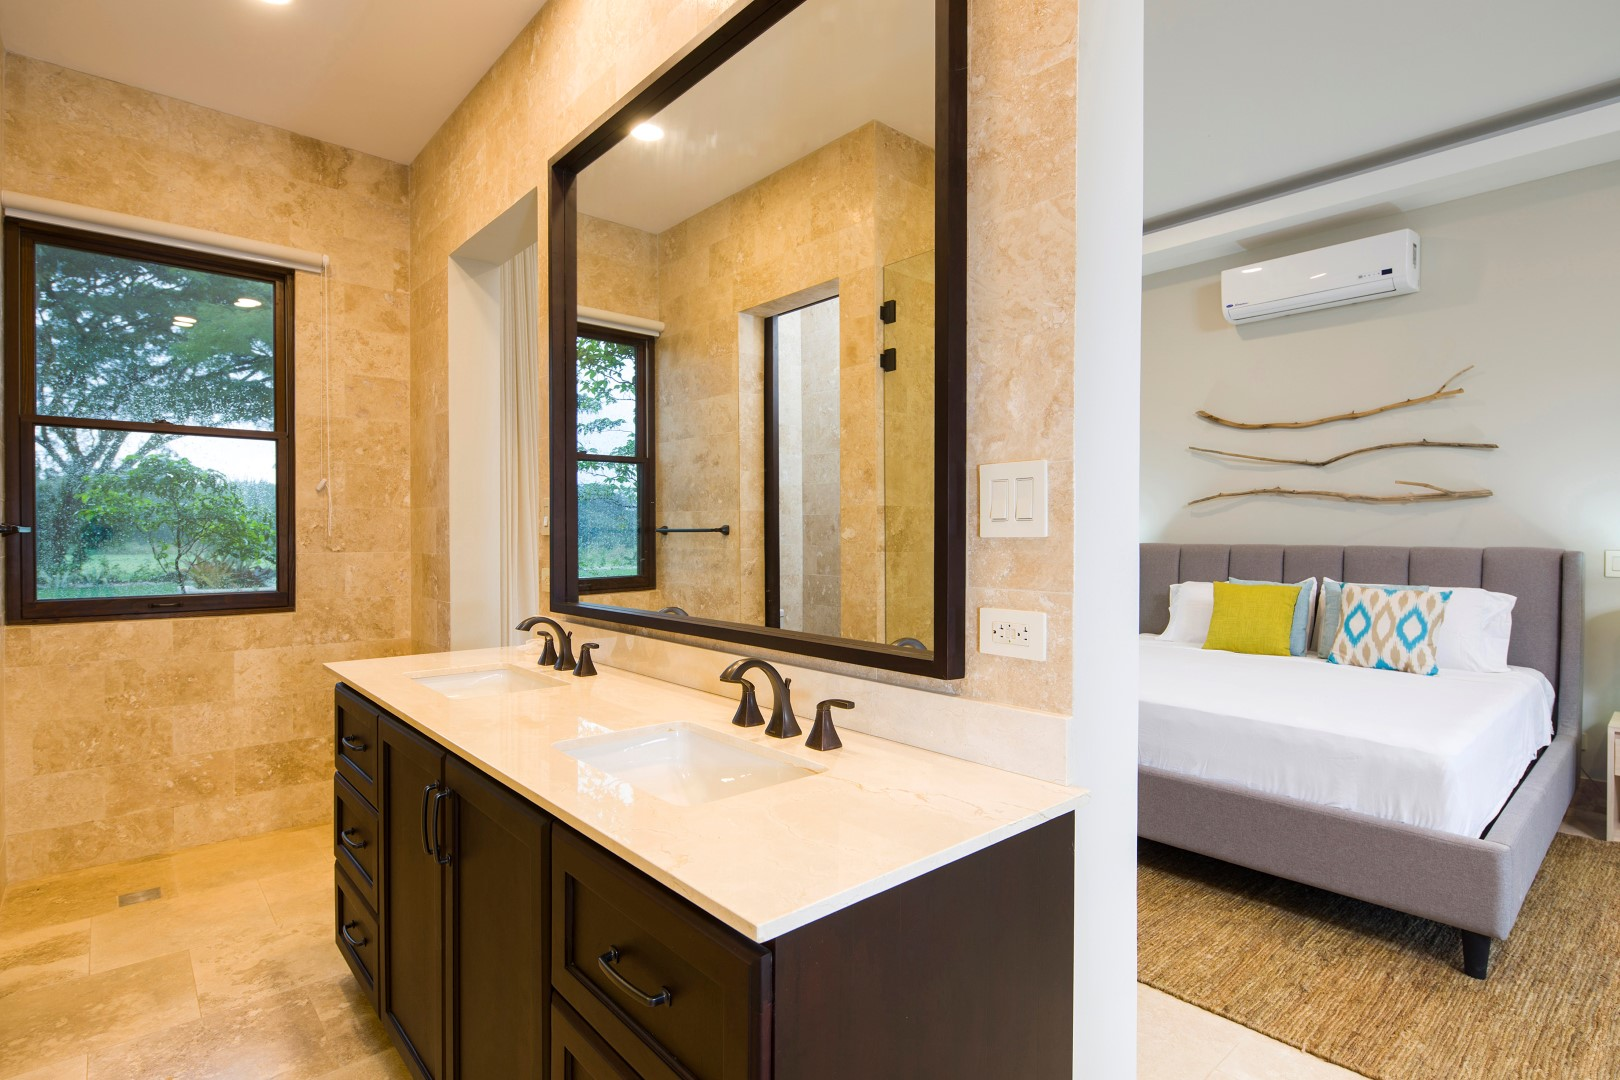 Each bedroom includes a private bath